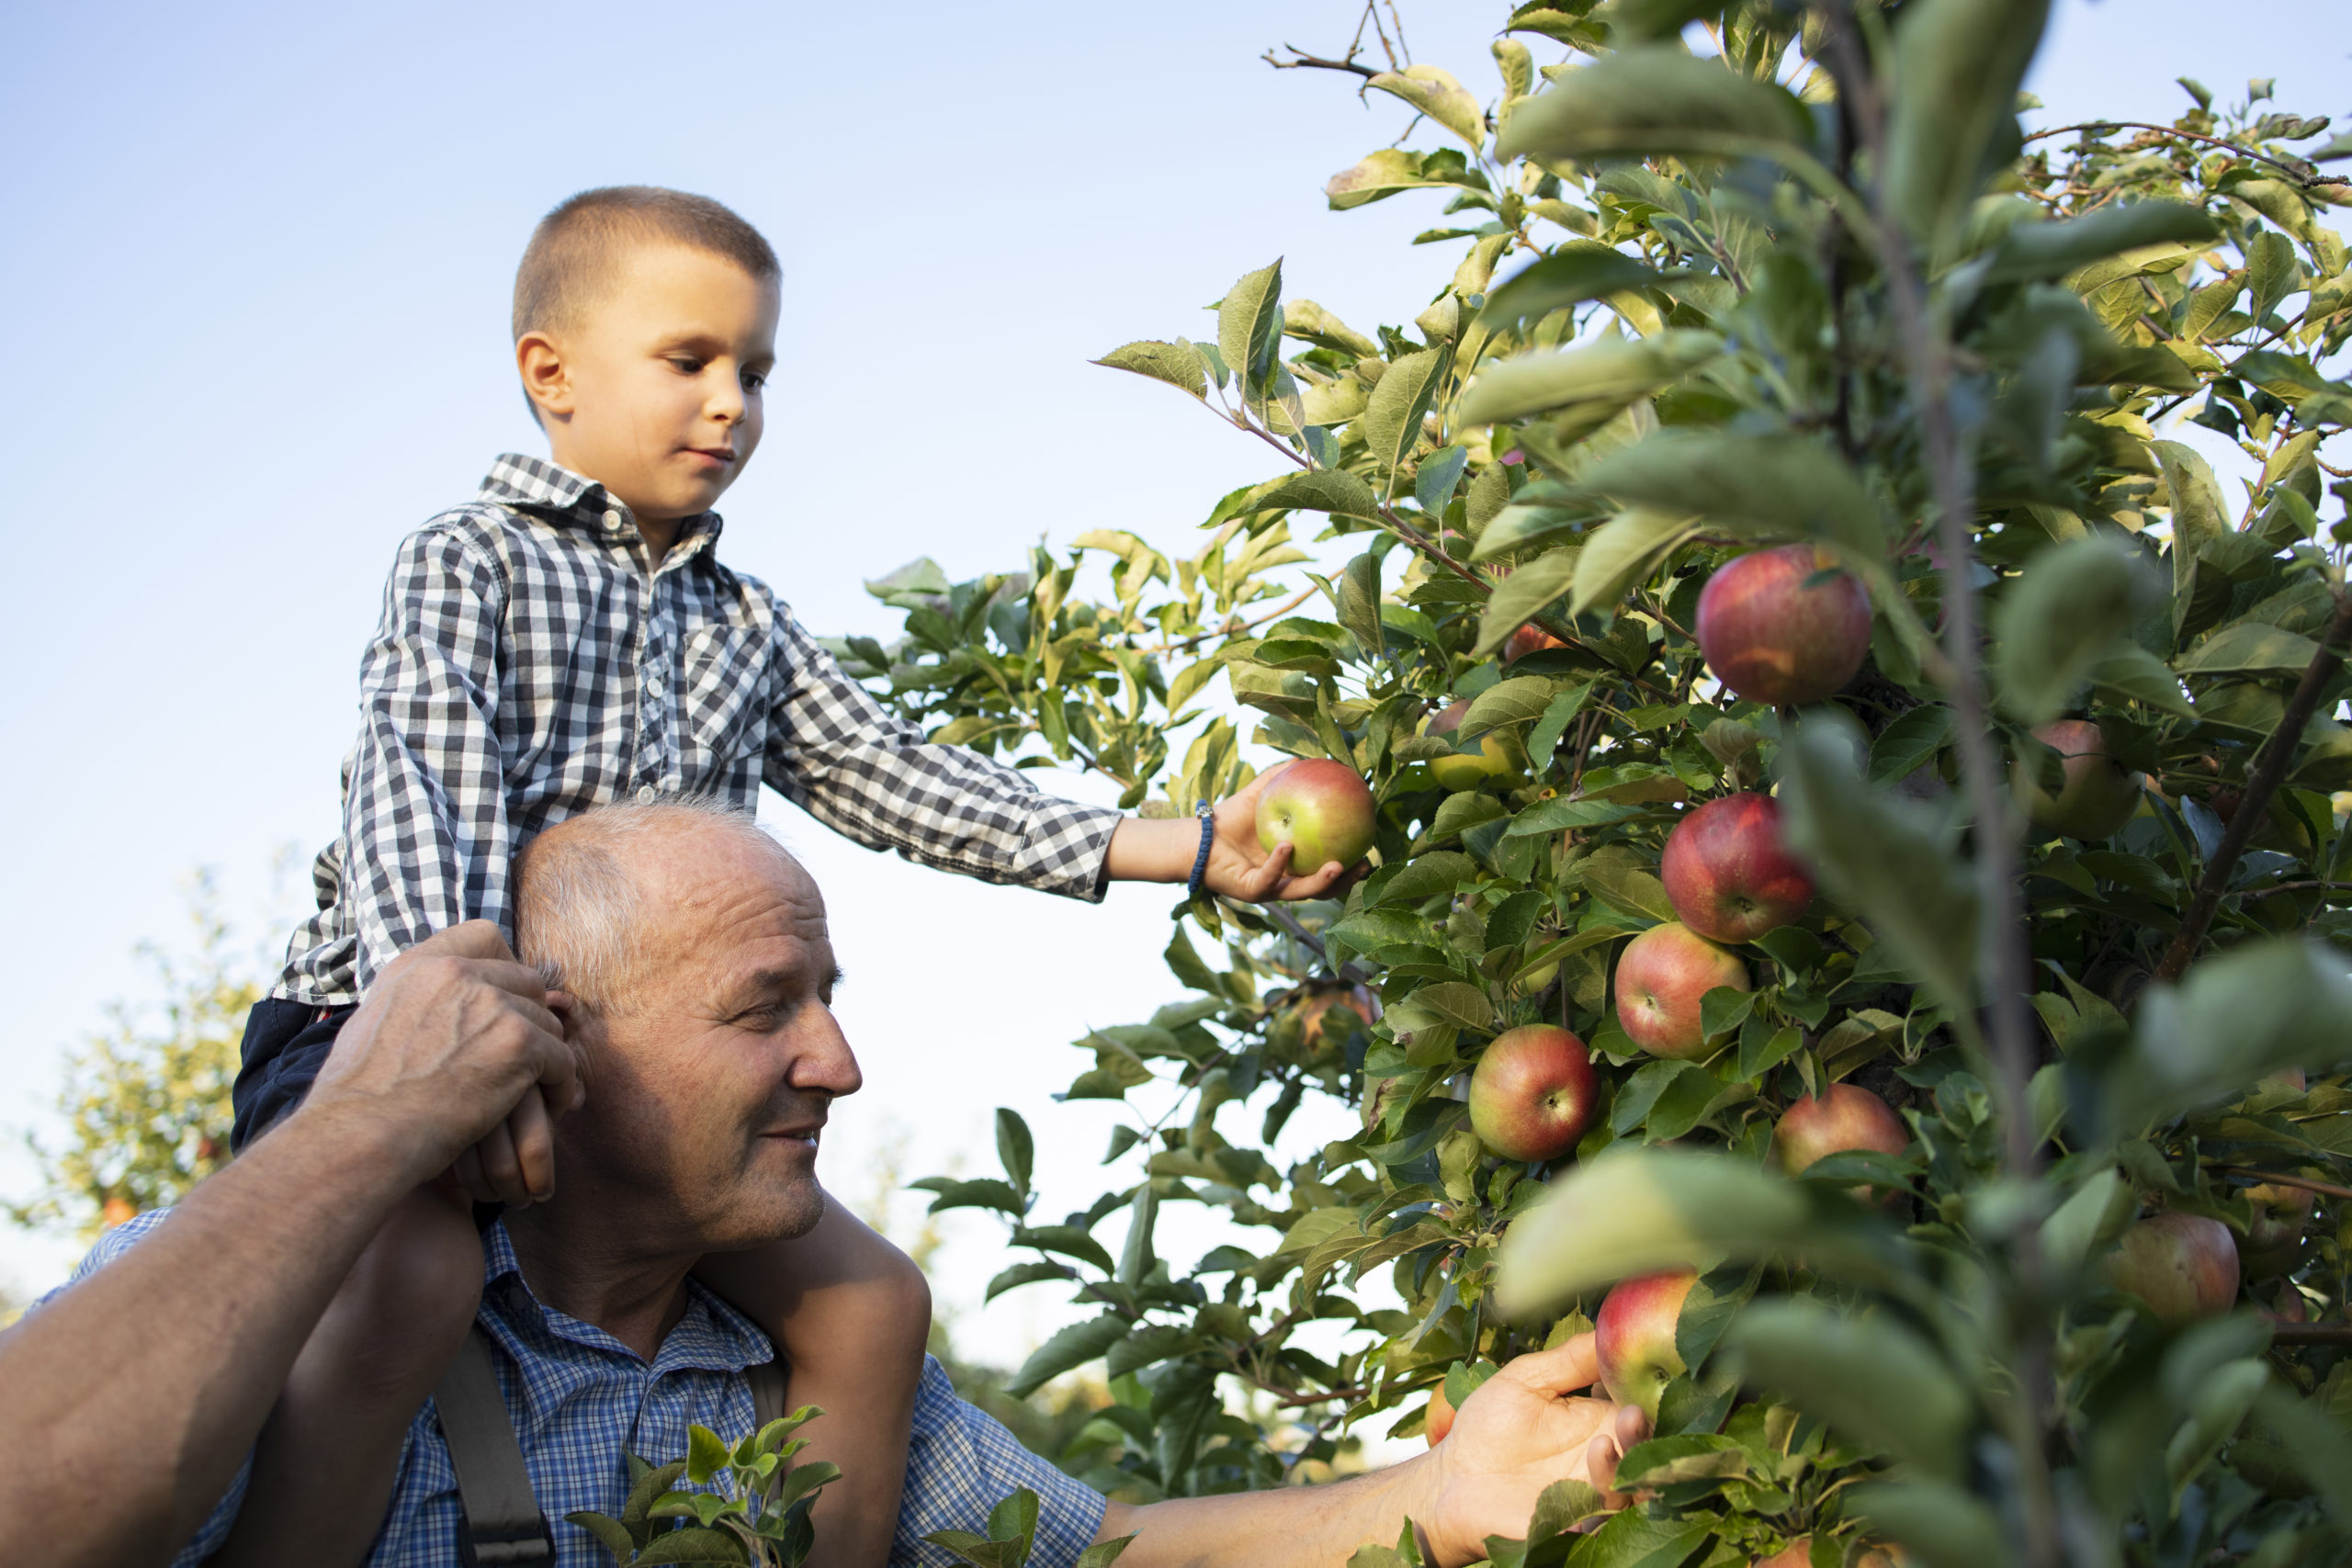 Grandfather Carrying His Grandson Piggyback And Picking Apples Together In Fruit Orchard.